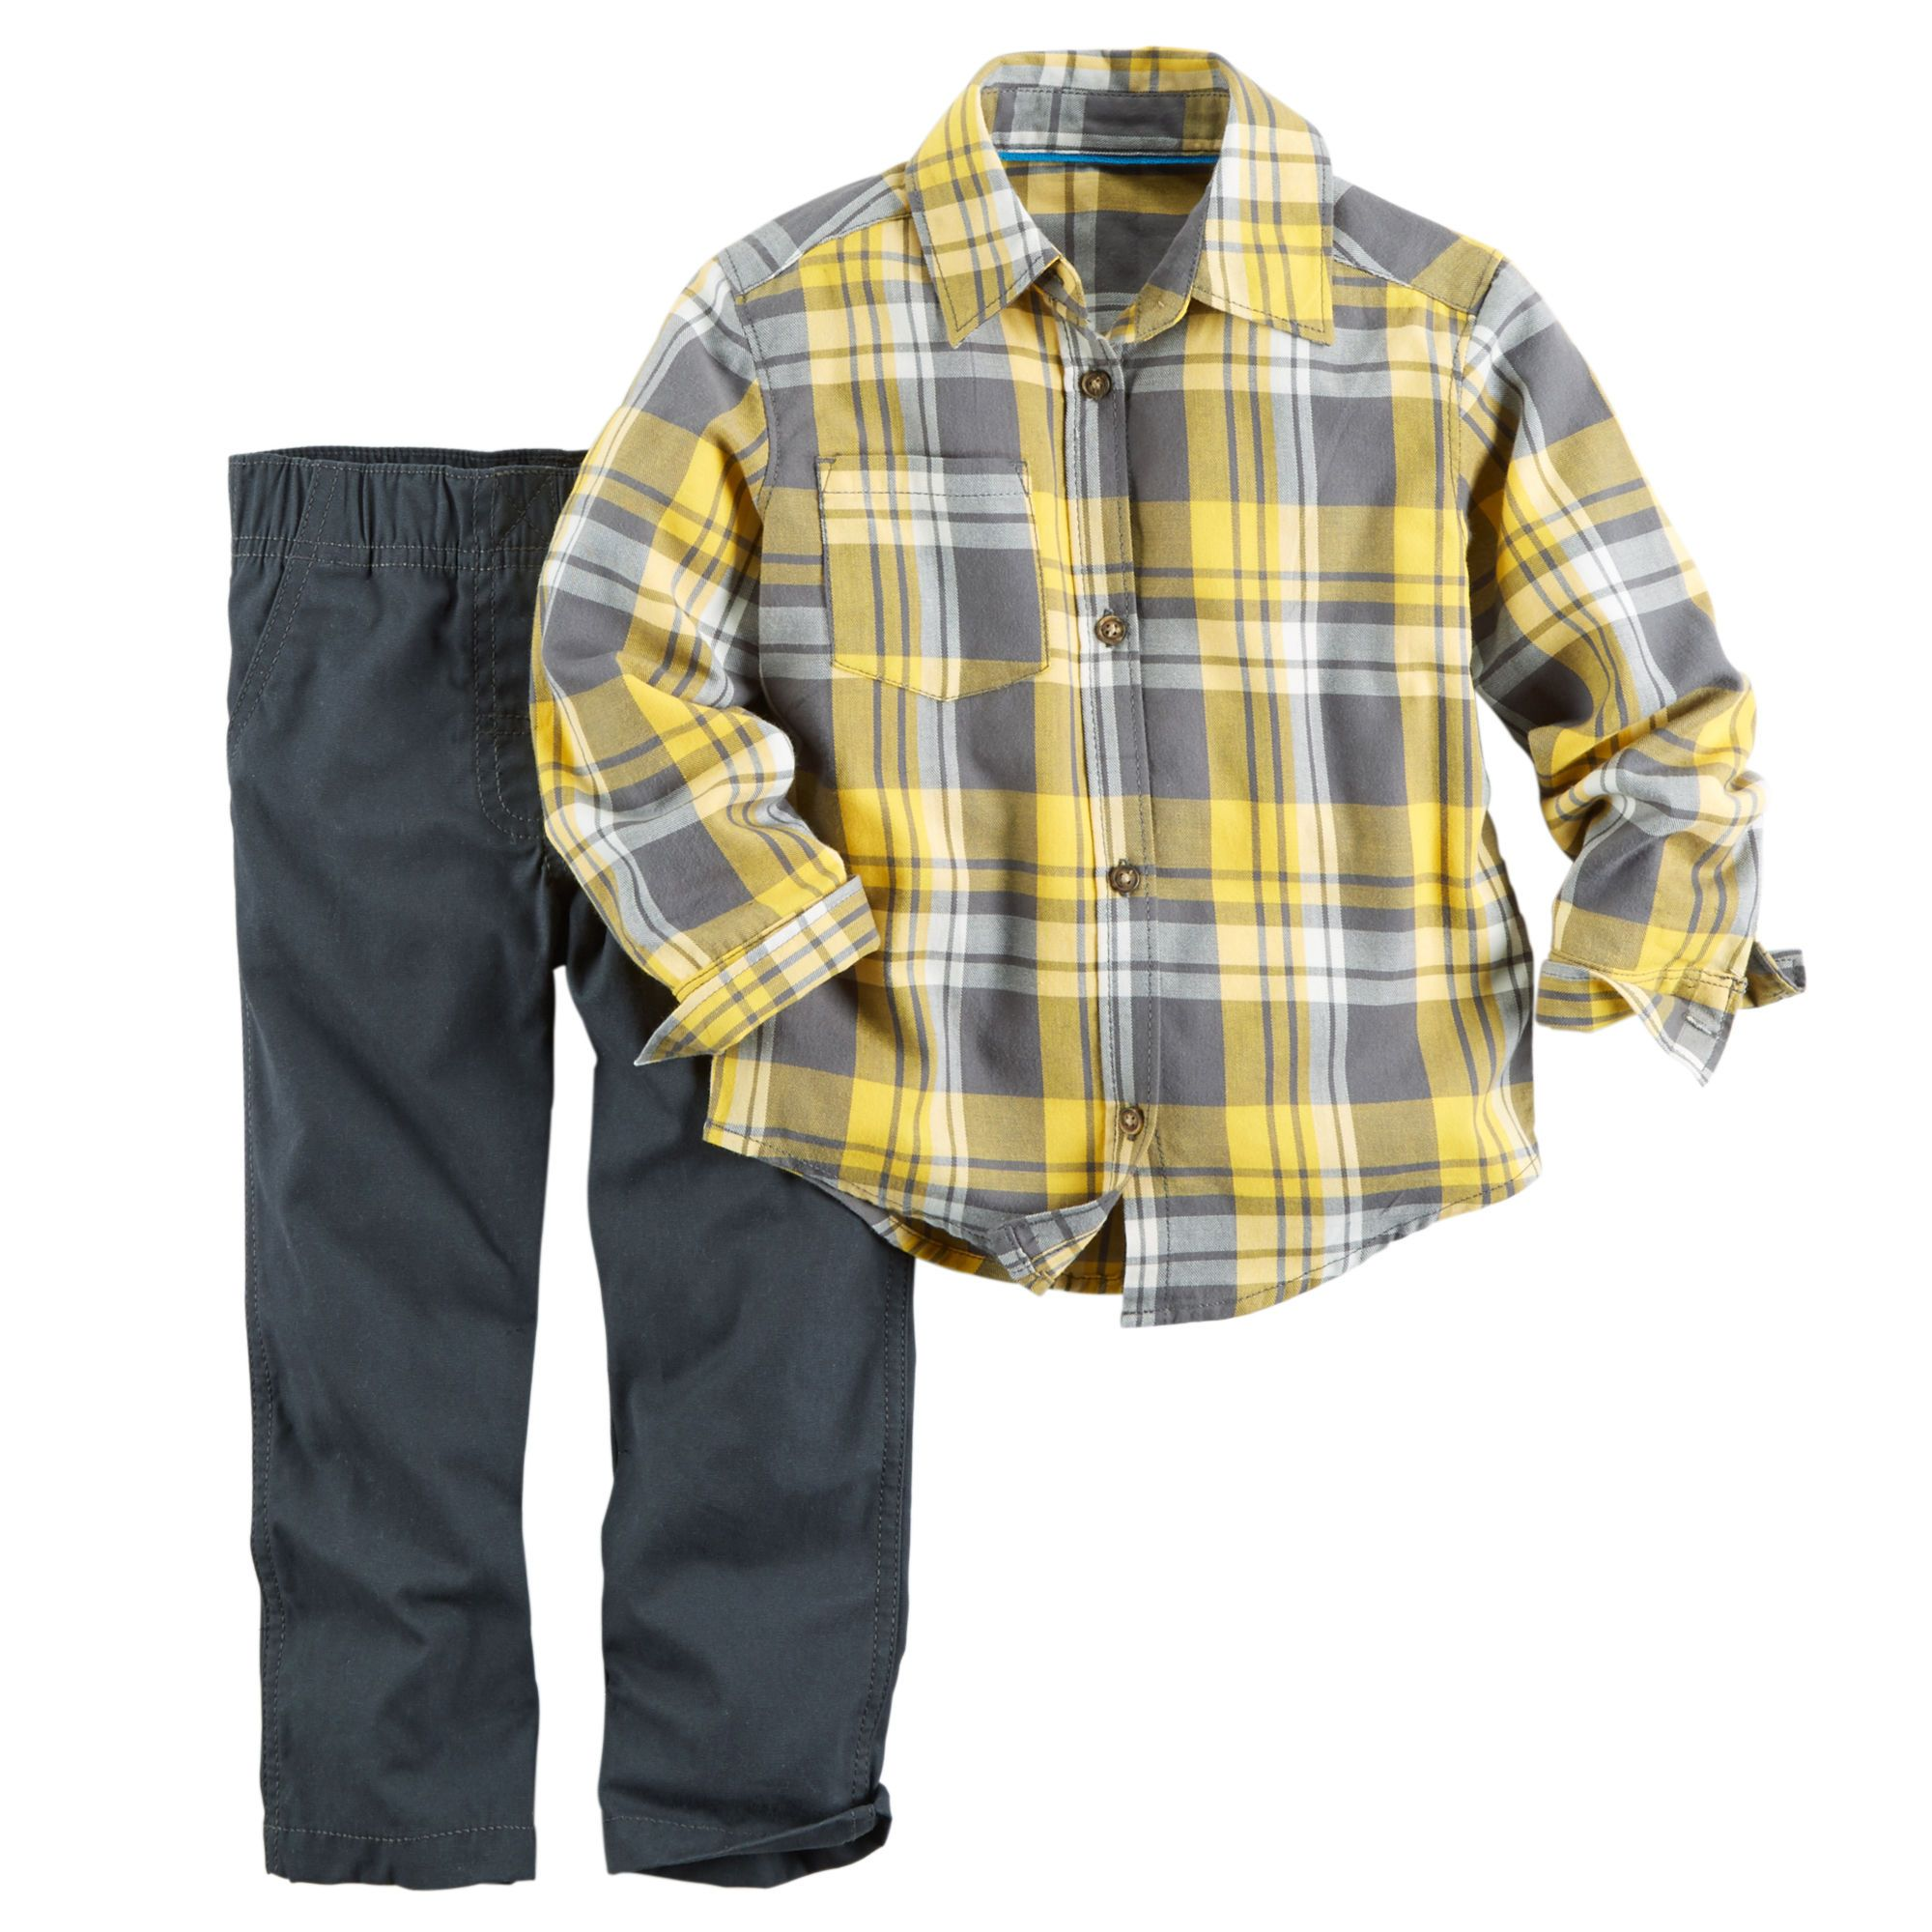 Flannel shirt for baby boy  Baby Boy Piece Flannel Shirt u Pant Set  Carters  stuff for